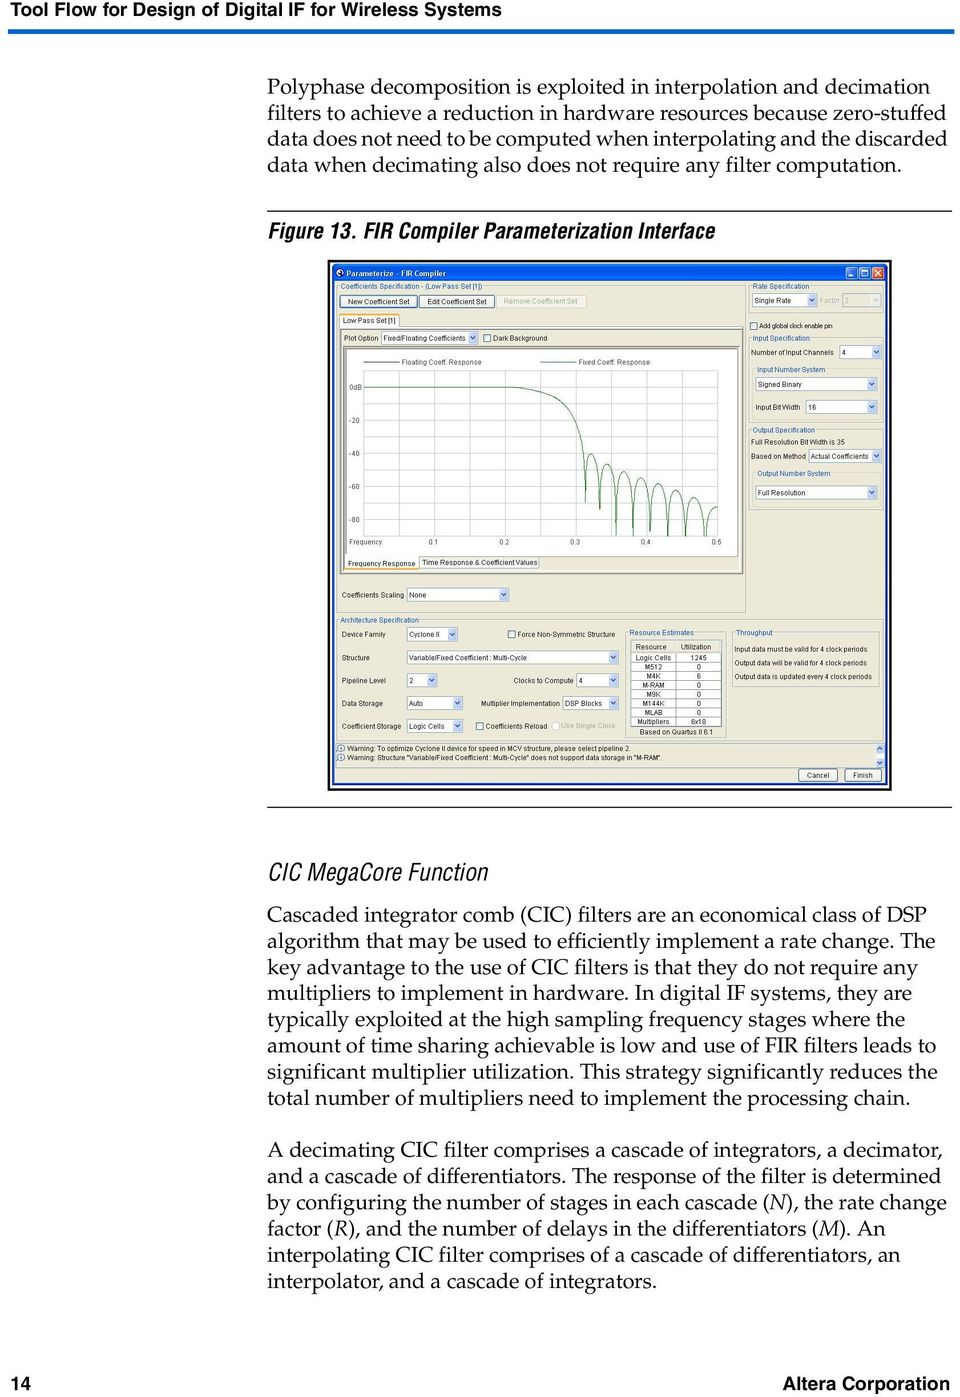 FIR Compiler Parameterization Interface CIC MegaCore Function Cascaded integrator comb (CIC) filters are an economical class of DSP algorithm that may be used to efficiently implement a rate change.